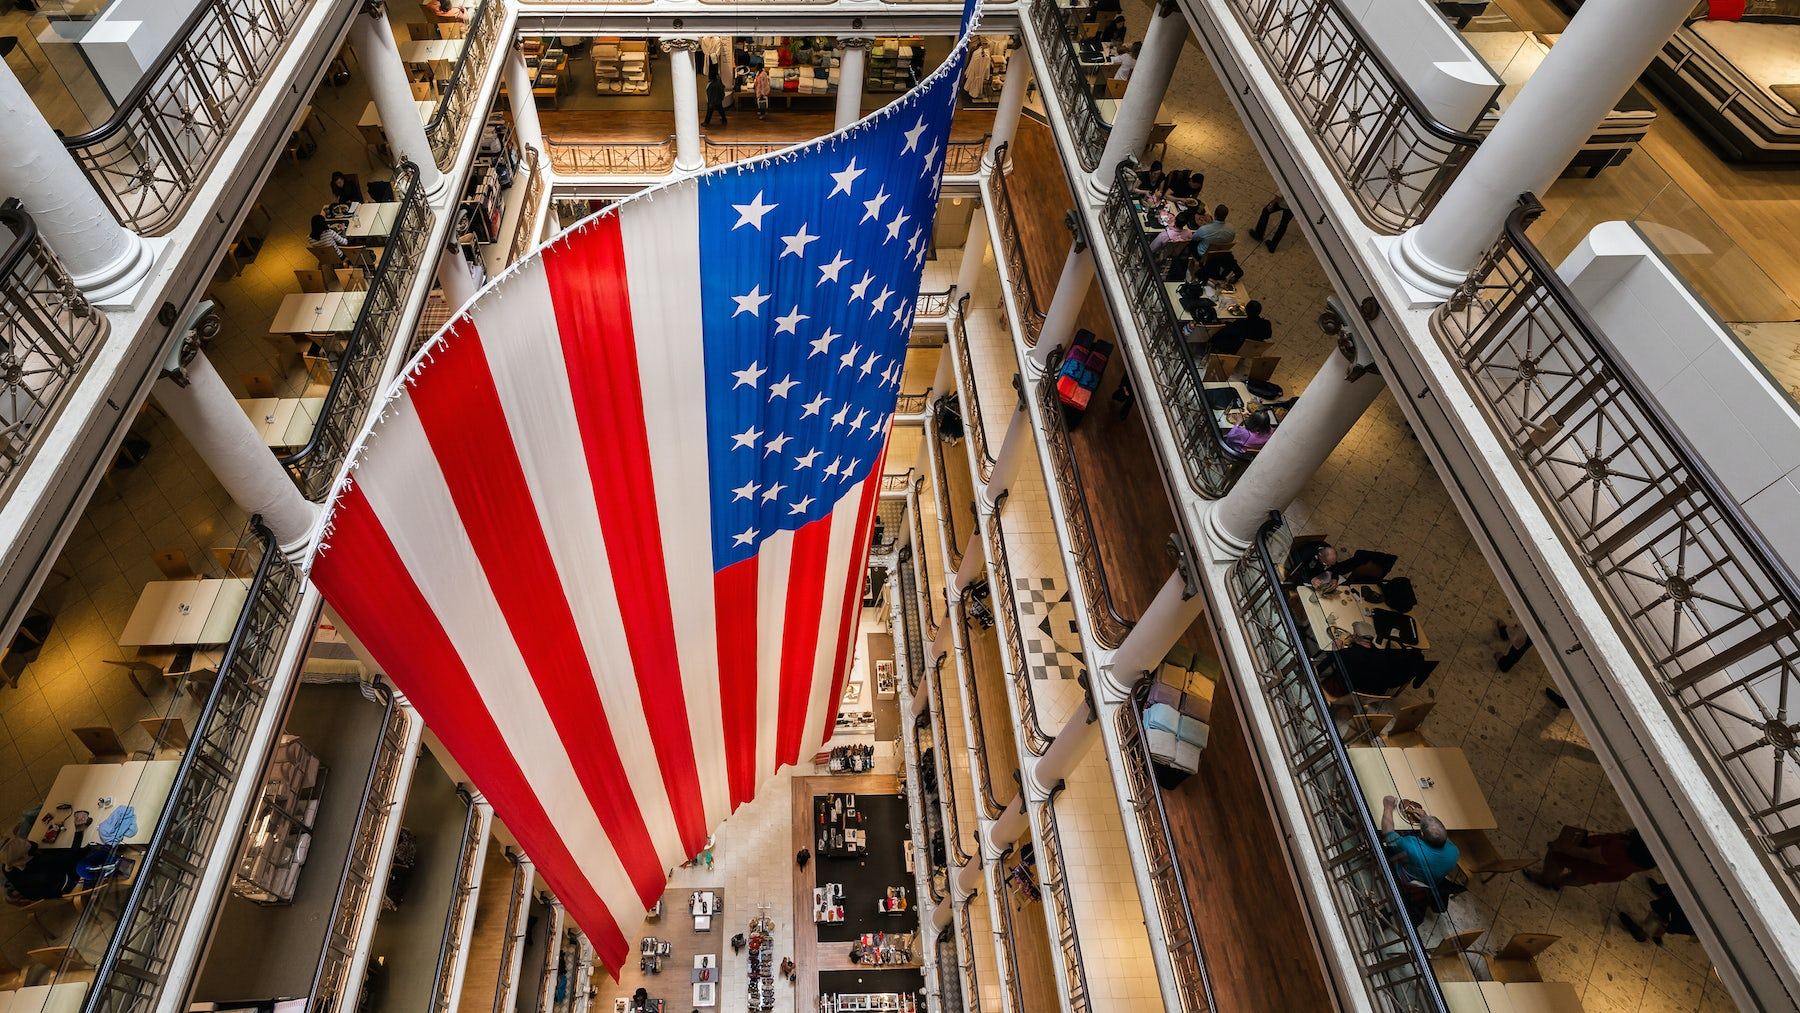 An american flag on display in Macy's in Chicago   Source: Shutterstock